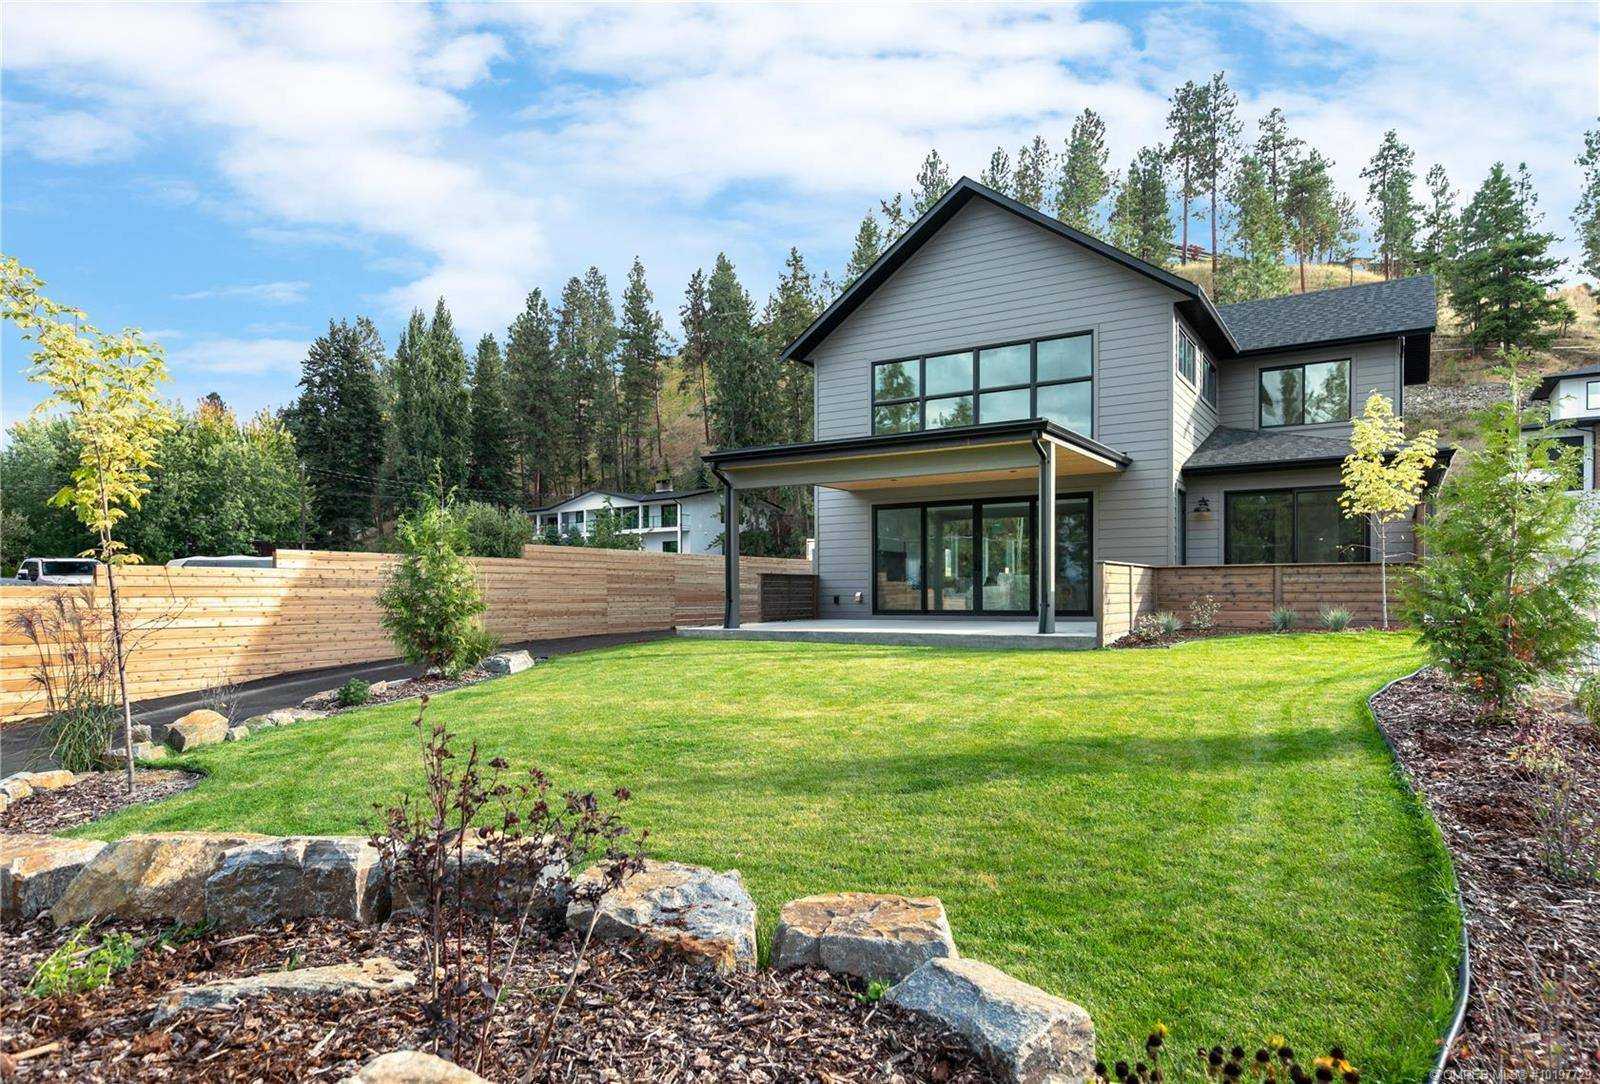 House for sale at 773 Barnaby Rd Kelowna British Columbia - MLS: 10197729